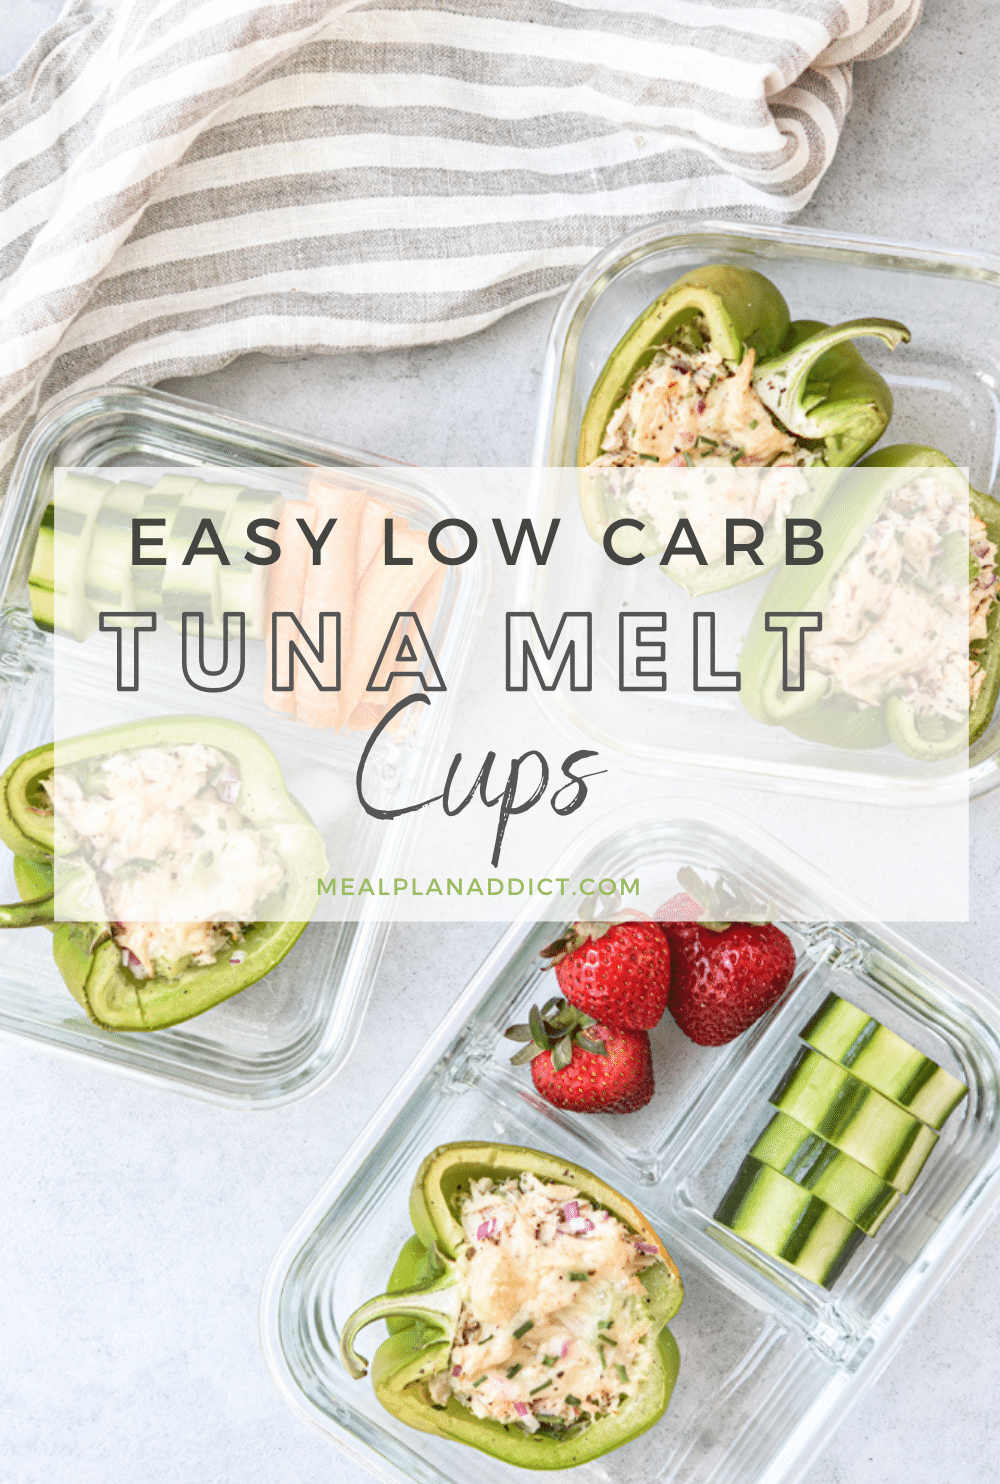 Easy Low Carb Tuna Melt Cups - Meal Plan Addict